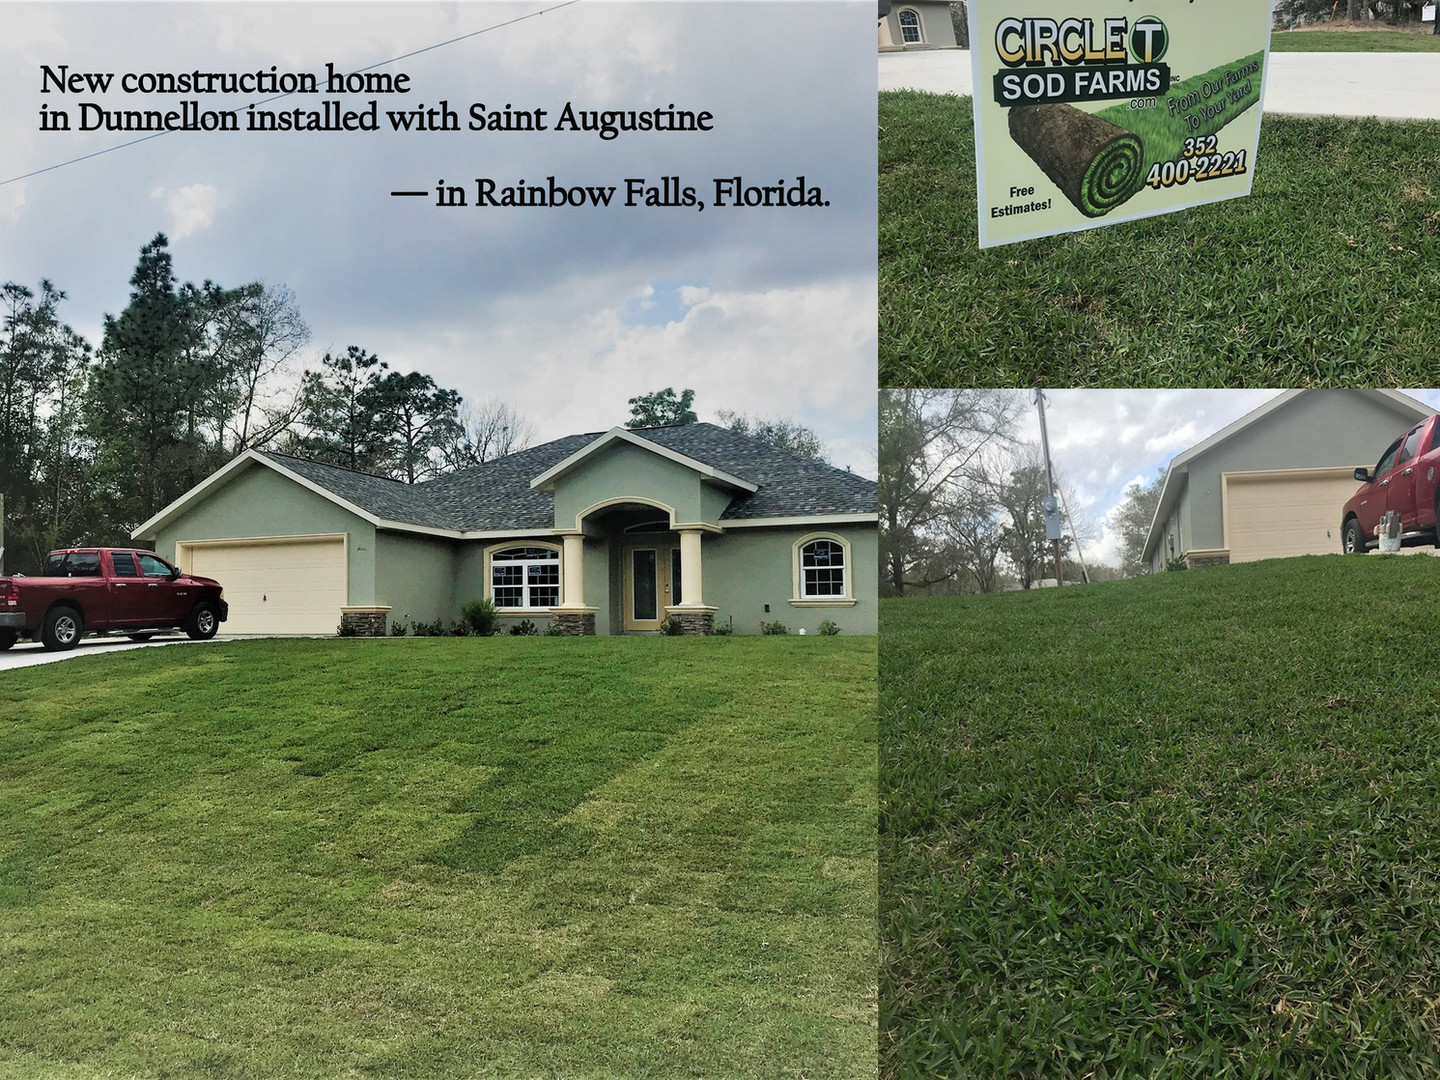 New_construction_home_in_Dunnellon